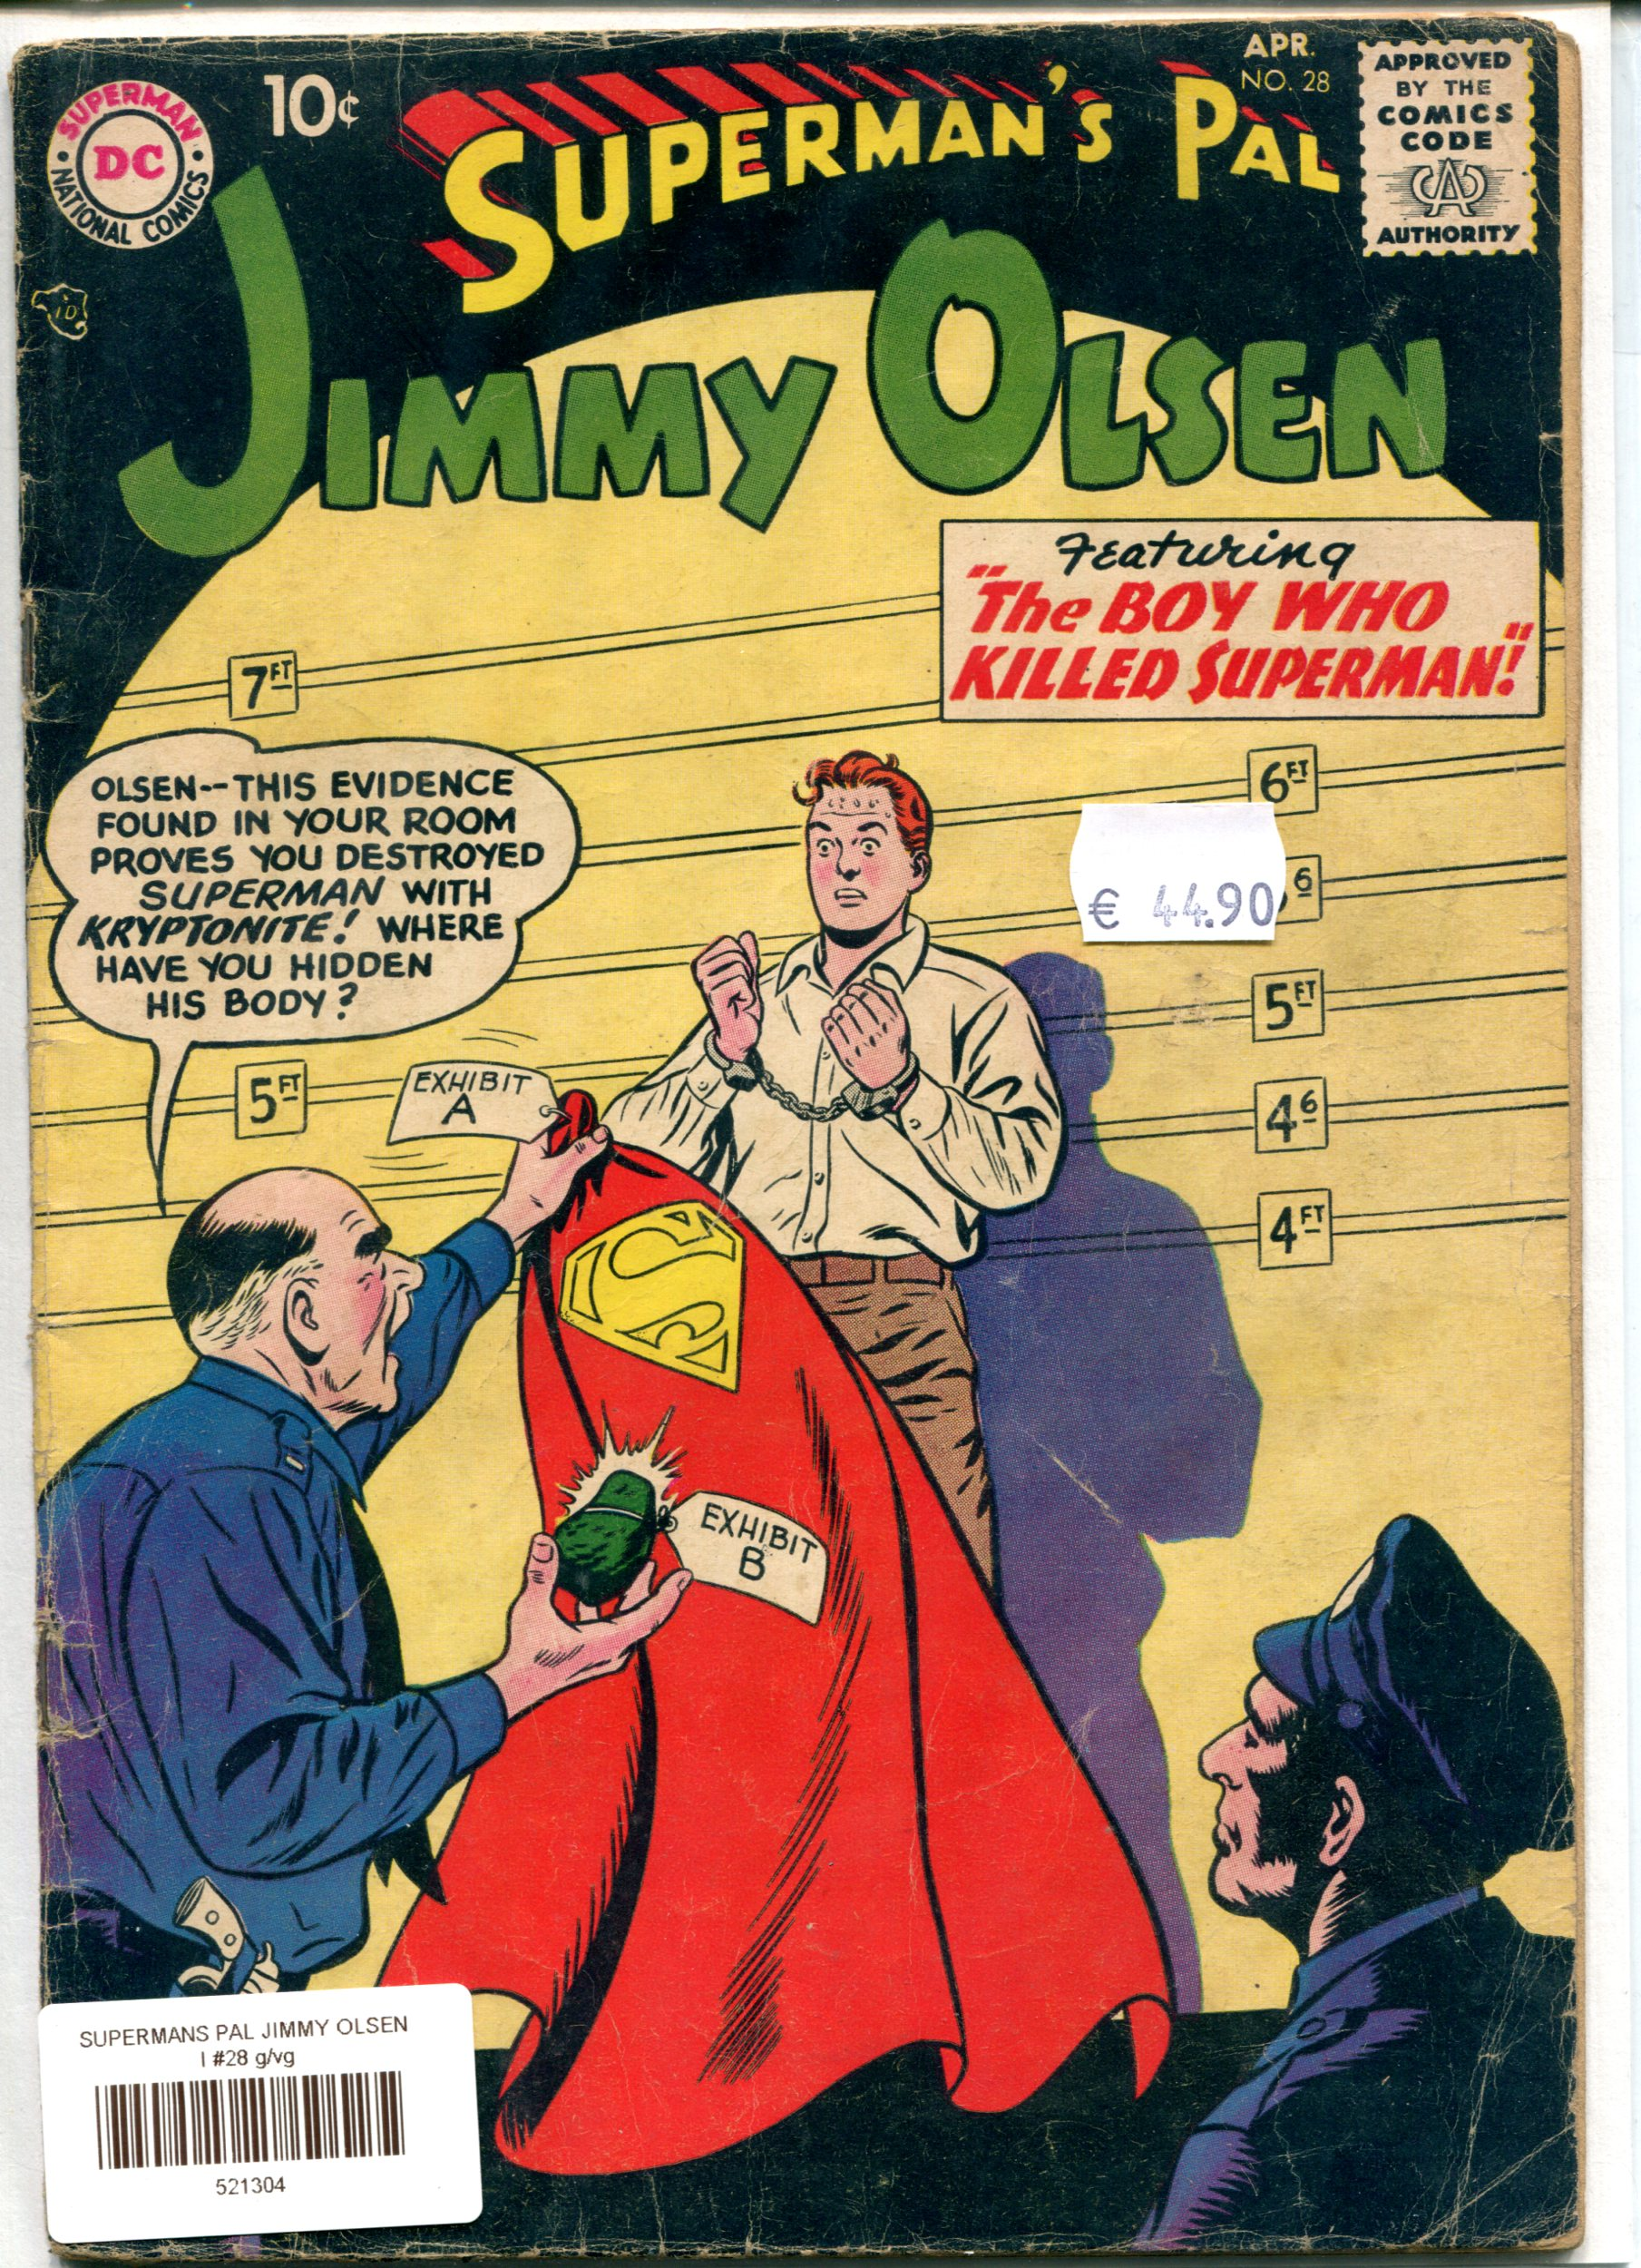 SUPERMANS PAL JIMMY OLSEN I